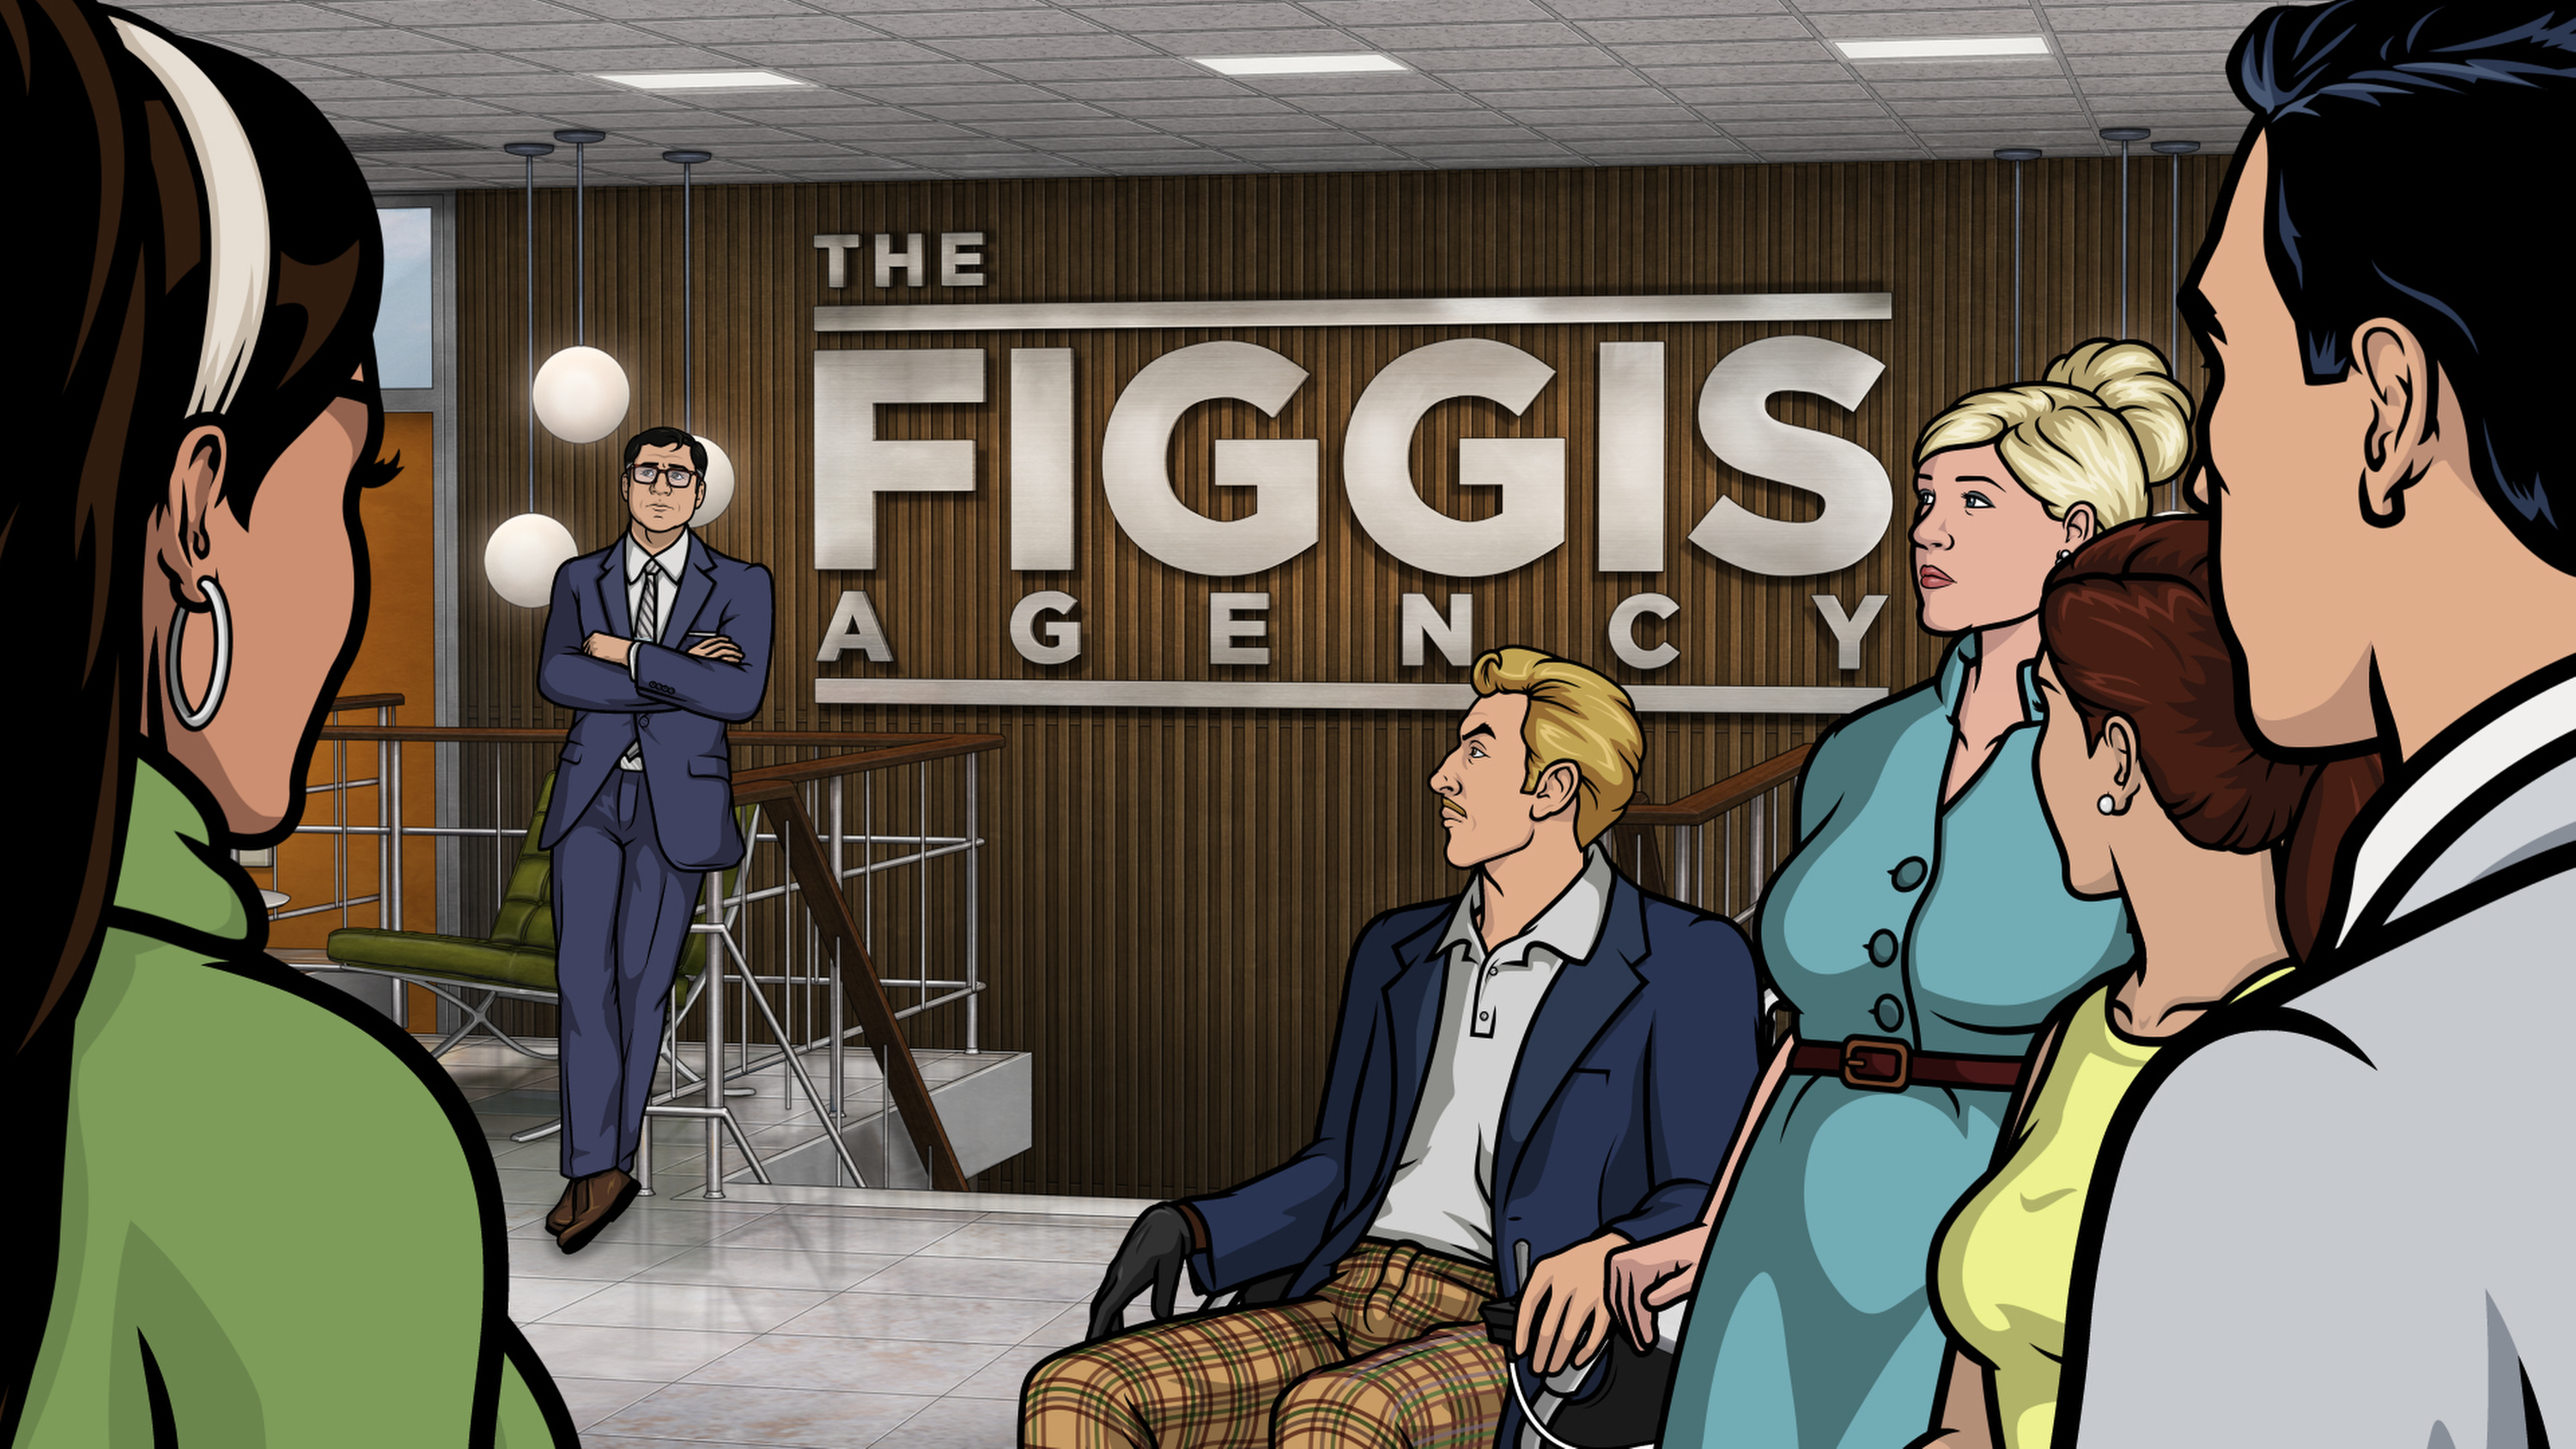 The Figgis Agency Archer Wiki FANDOM Powered By Wikia - Figis com invoice